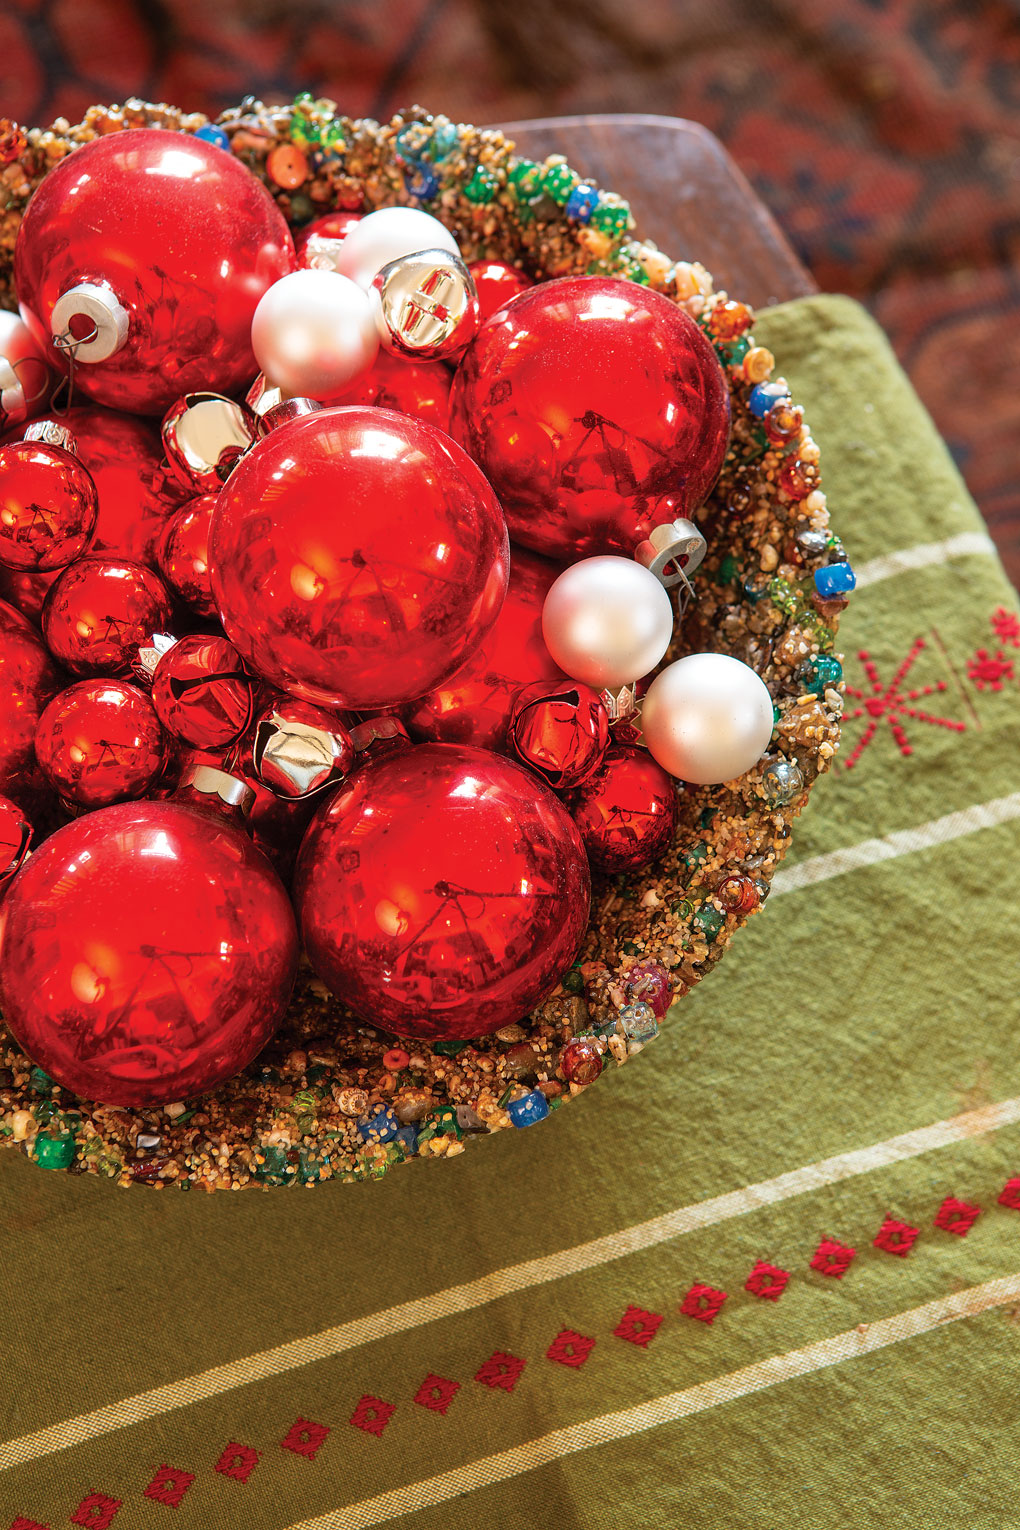 Vintage holiday table runner topped with a large centerpiece bowl filled with glass antique red ball ornaments.